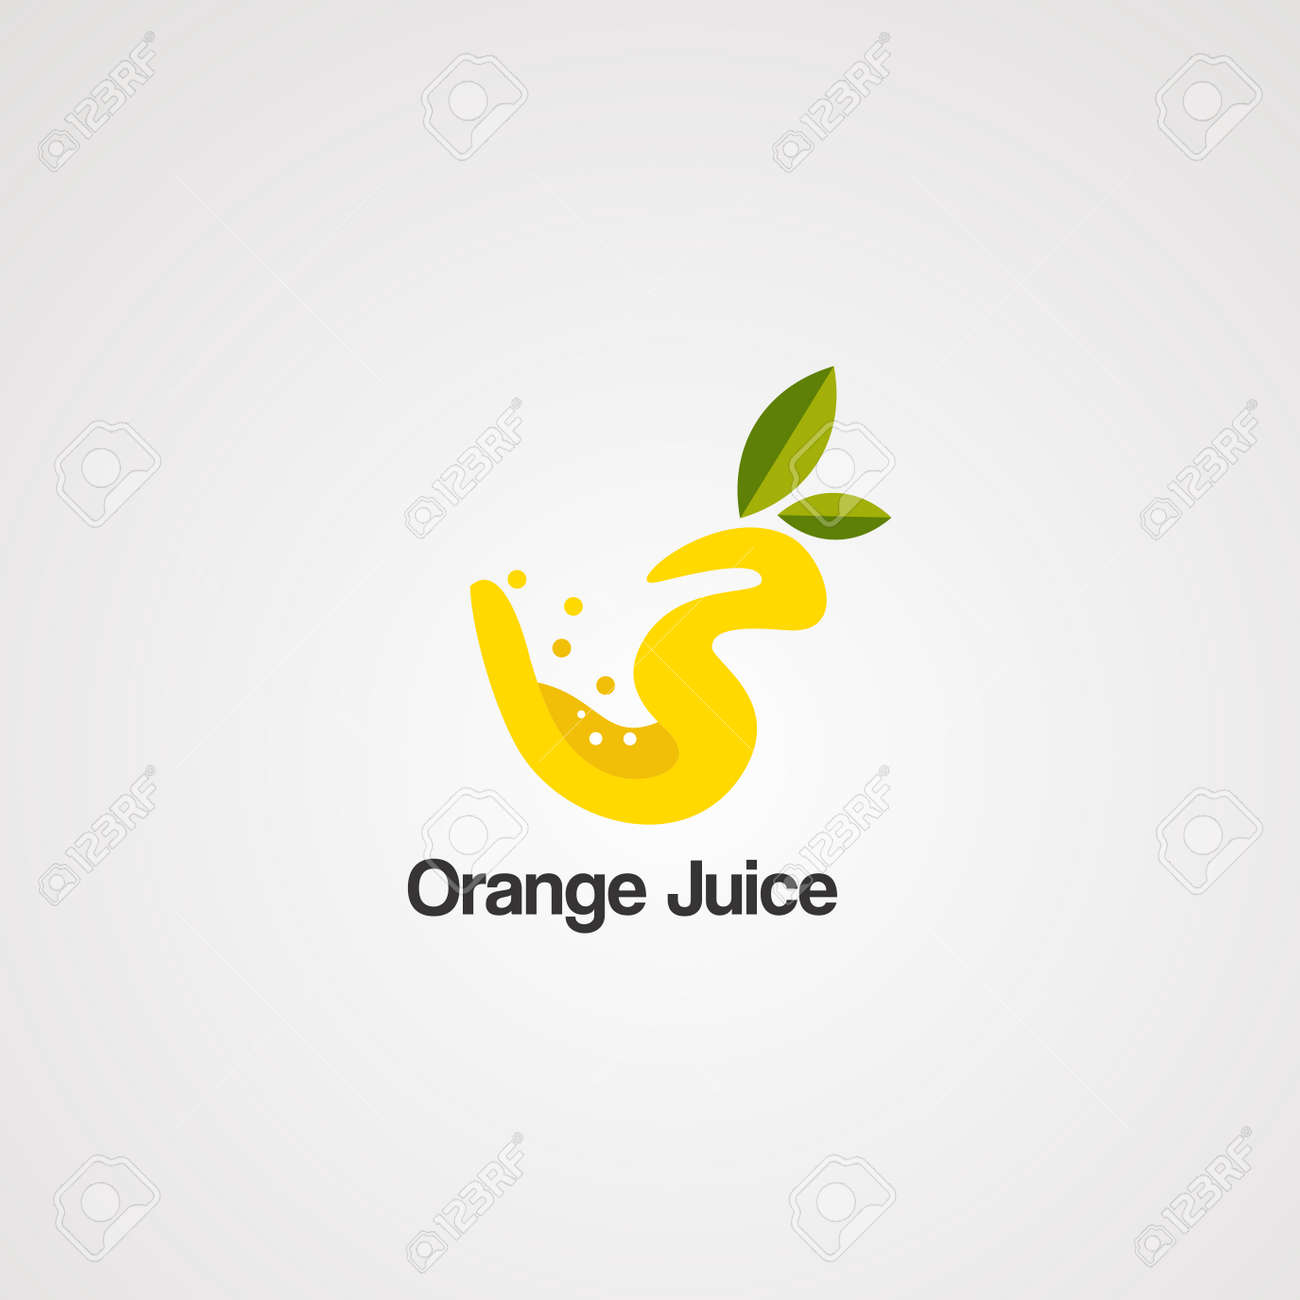 orange juice logo vector, icon, element, and template for company